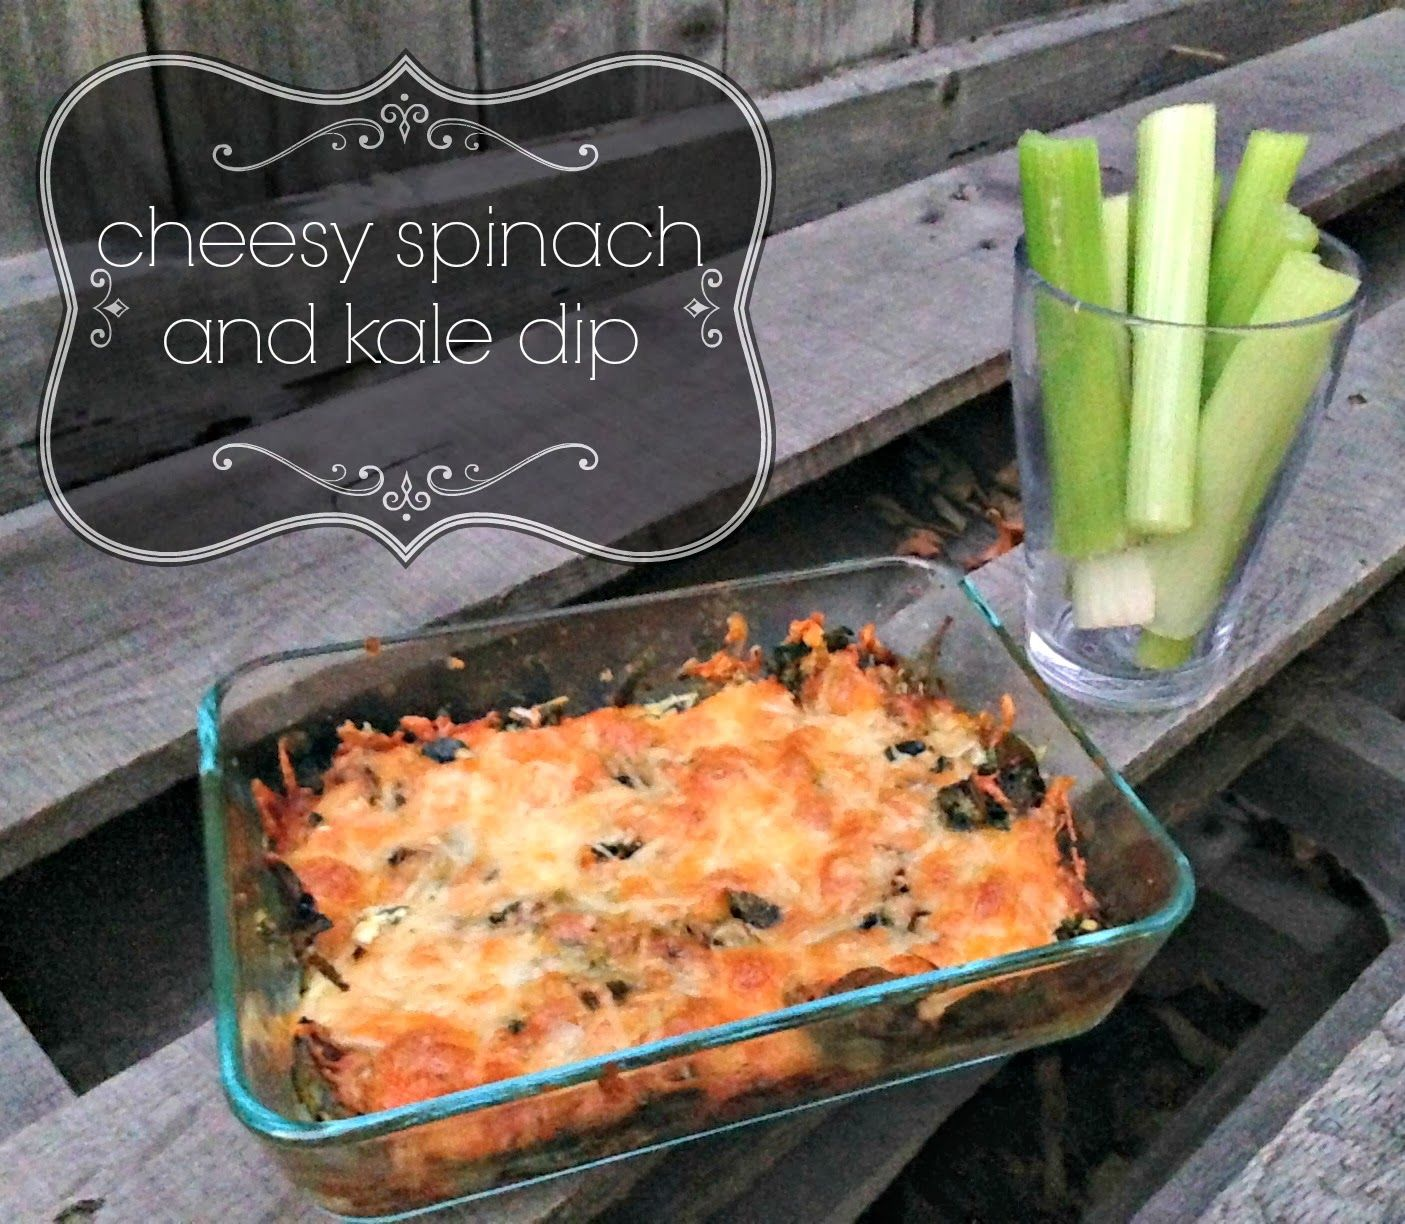 Confessions of a Foodaholic: cheesy spinach and kale dip